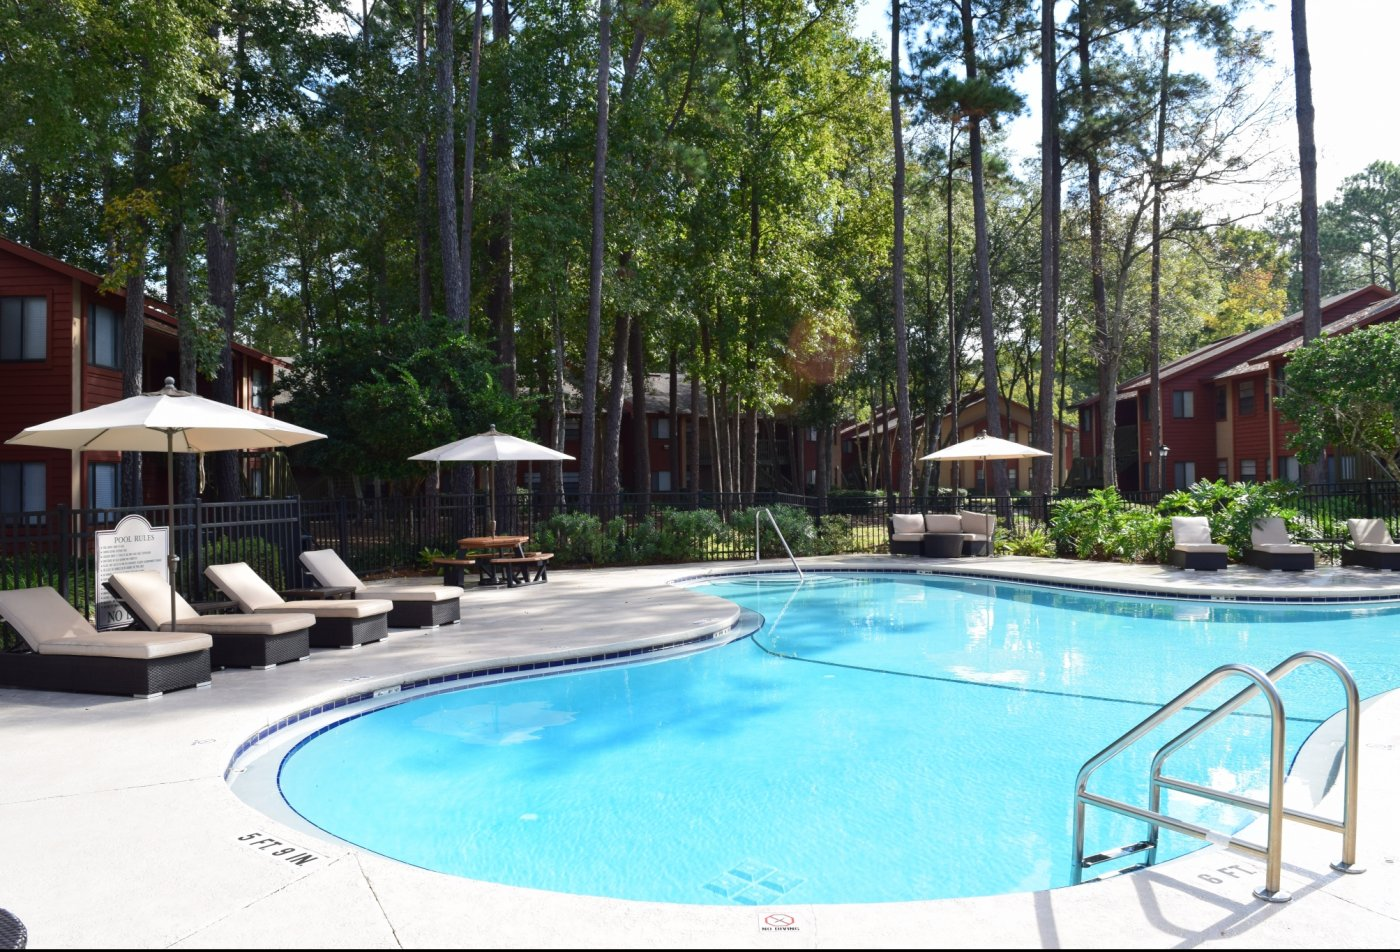 Sparkling Pool | Apartments for rent in Jacksonville, FL | Deerfield Apartments